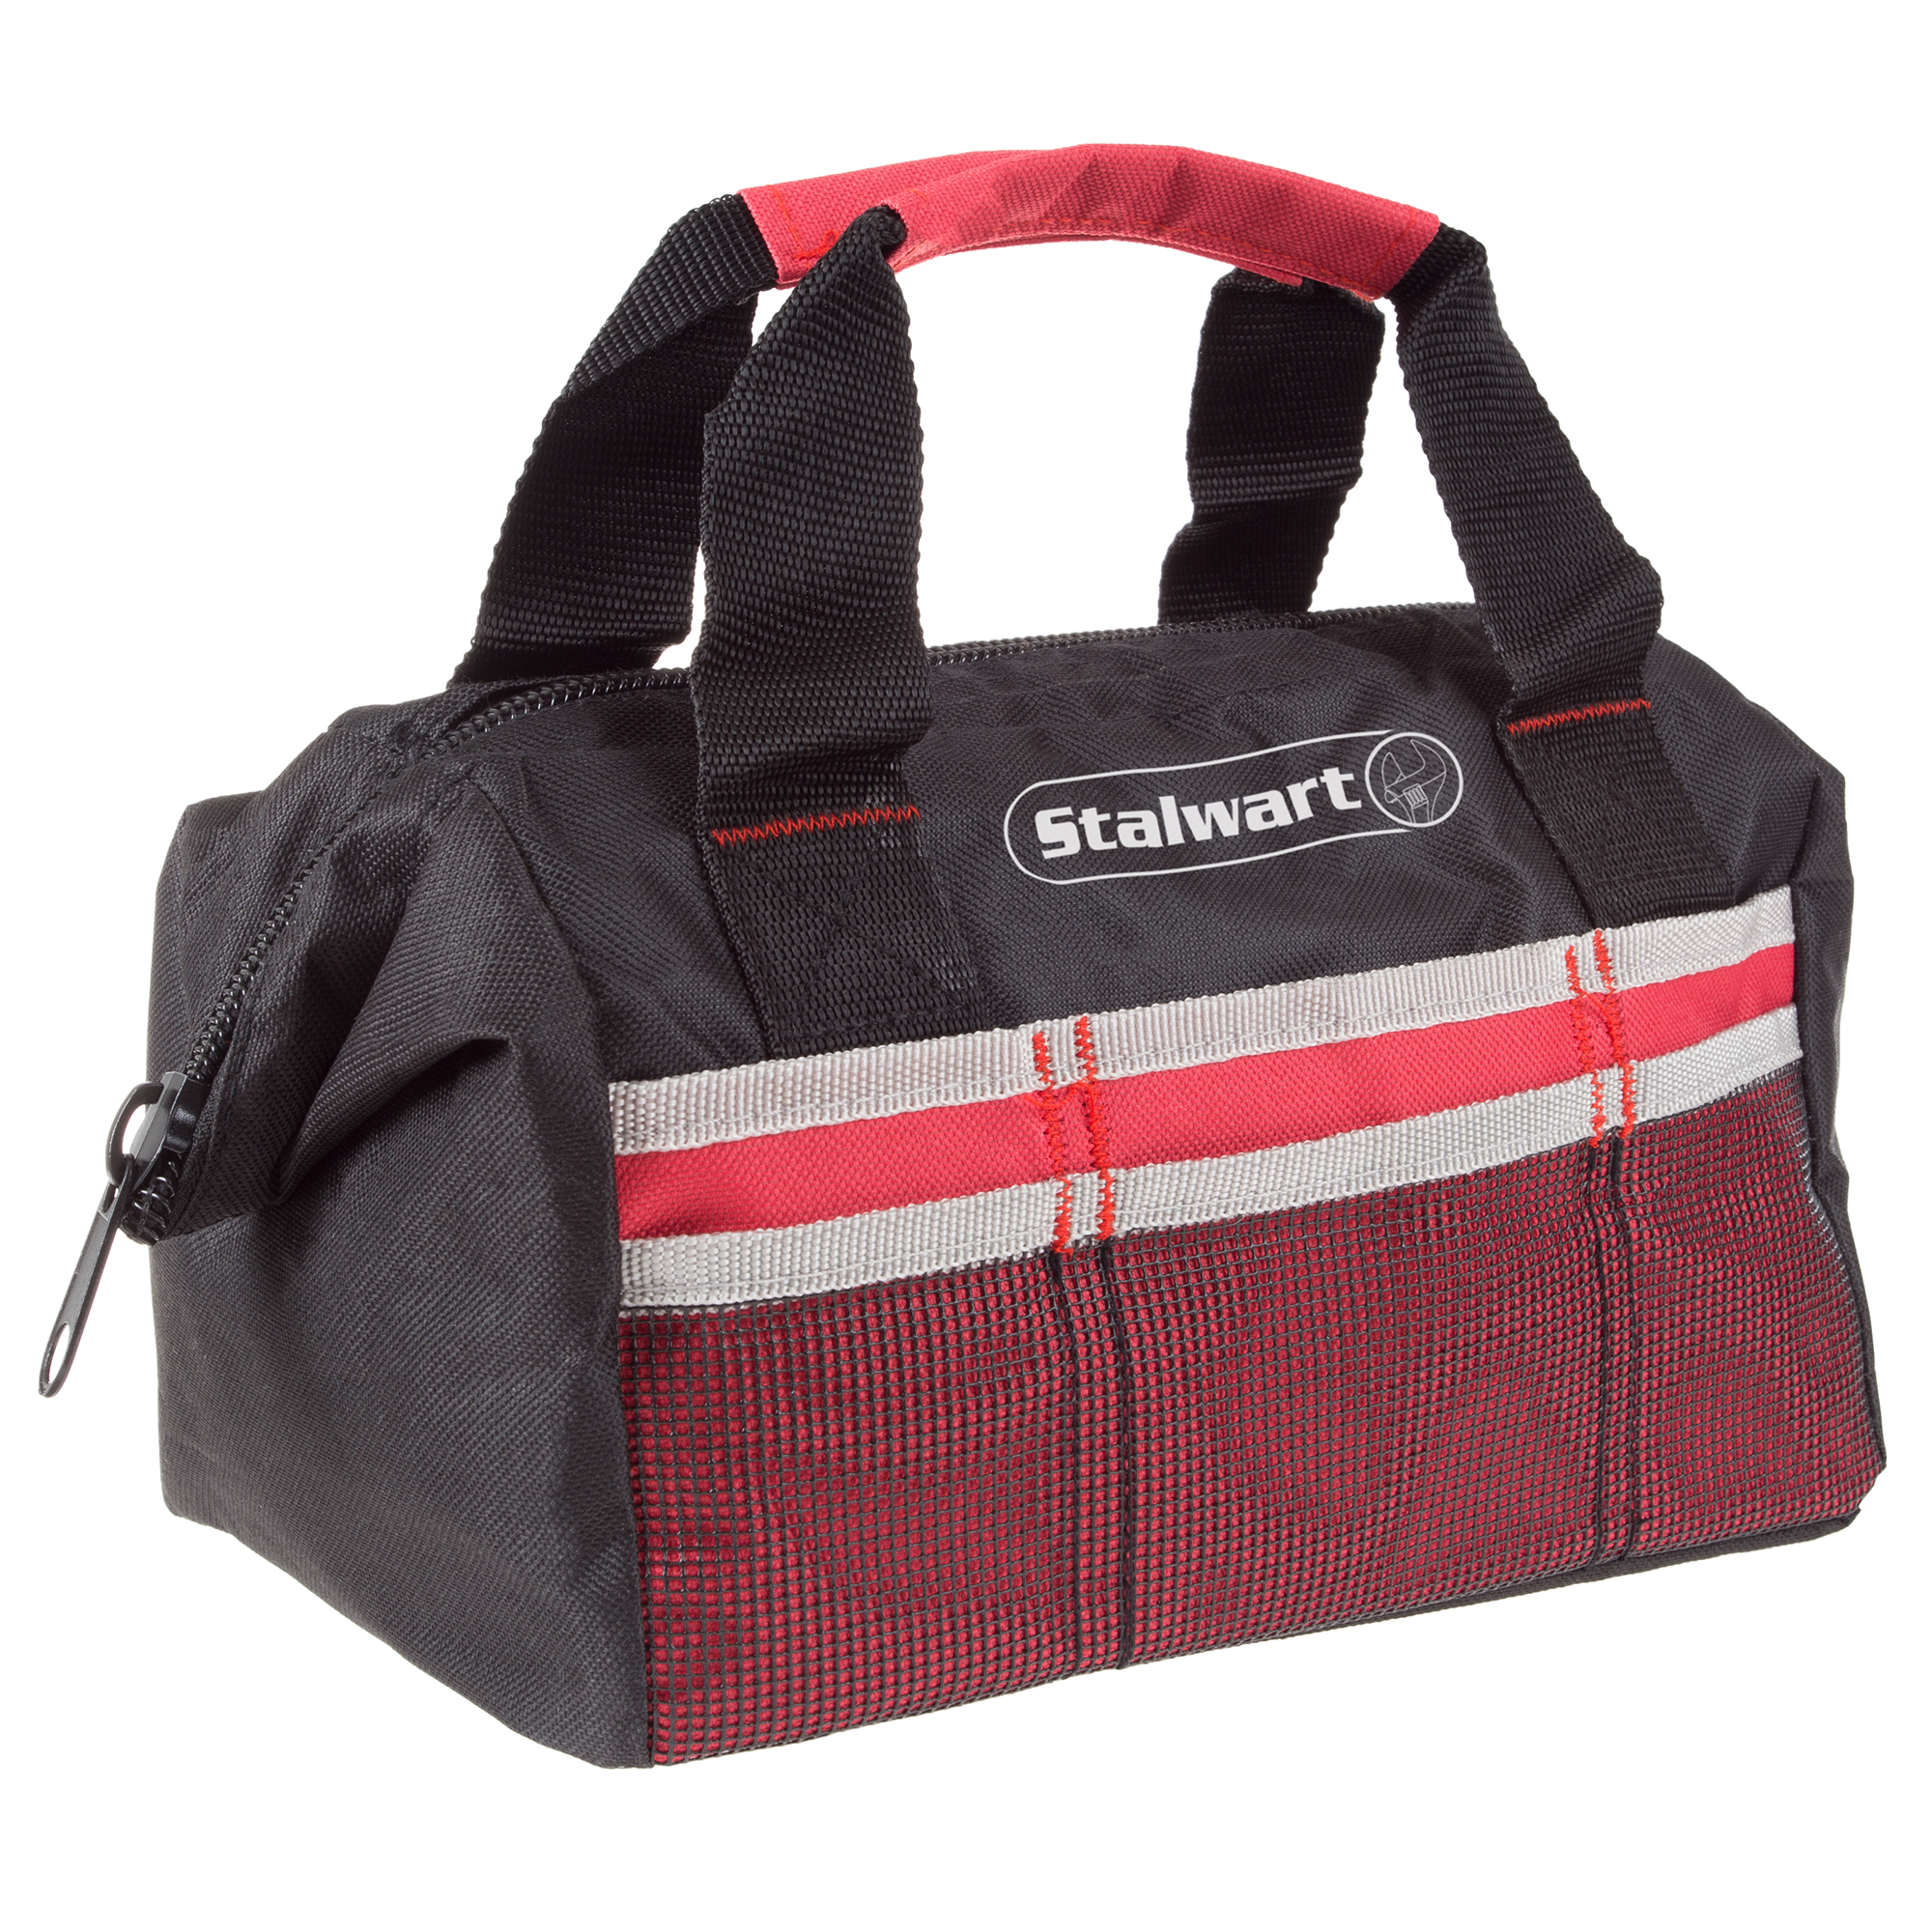 Soft Sided Tool Bag With Wide-Mouth Storage- Durable 12 Inch Compact Storage Pouch With Pockets for Tools and... by Trademark Global LLC